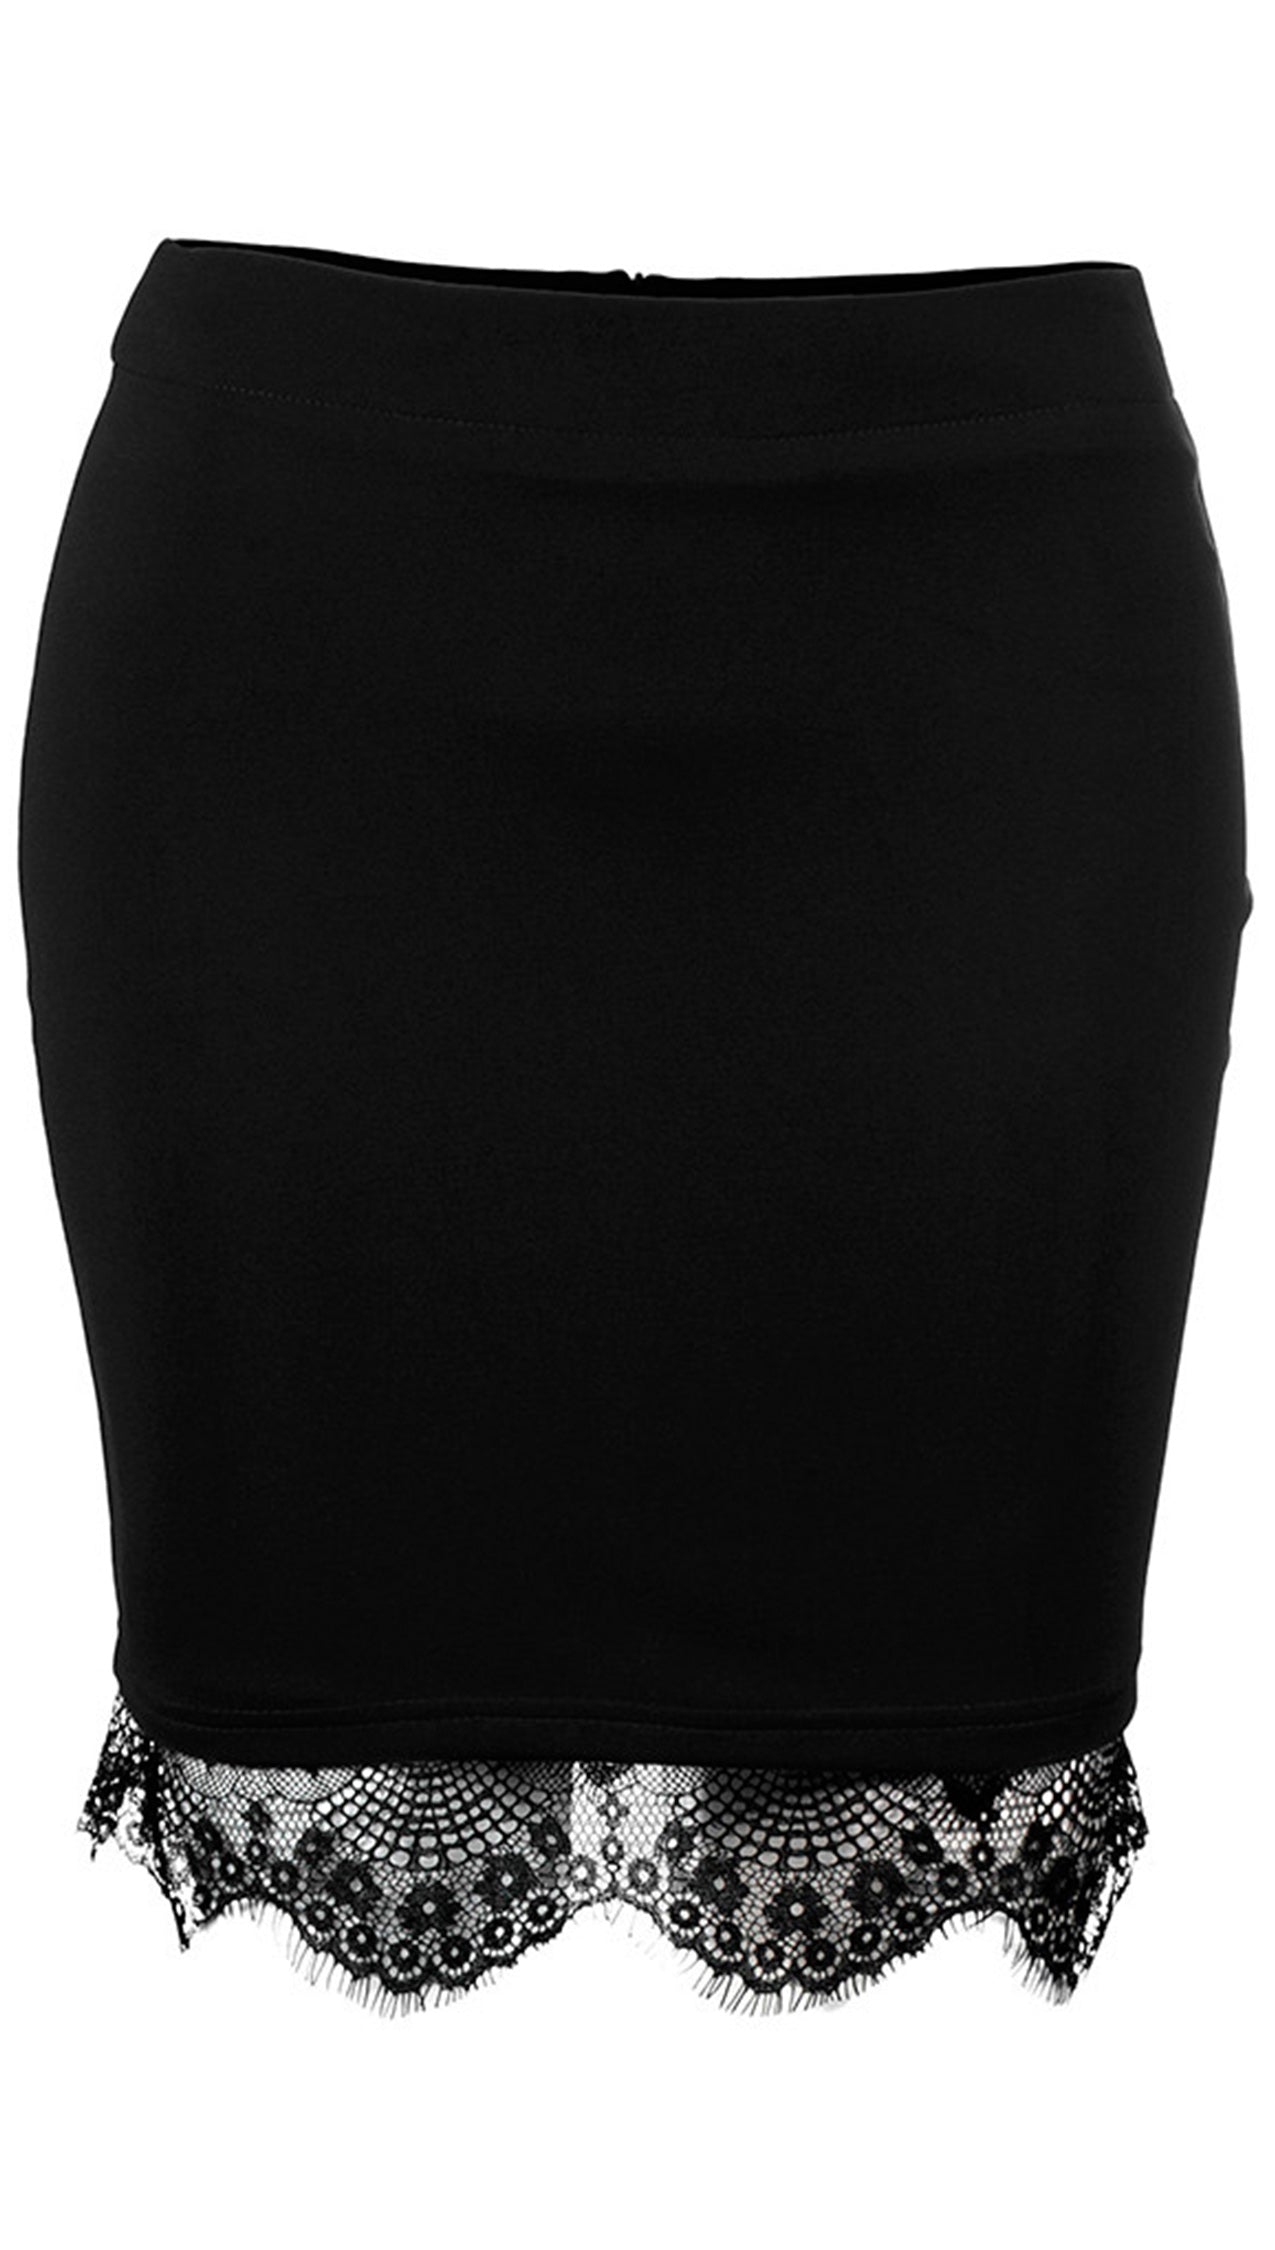 Black Red Scallop Lace Trim Mini Skirt - Fitted Pencil - ShopAA